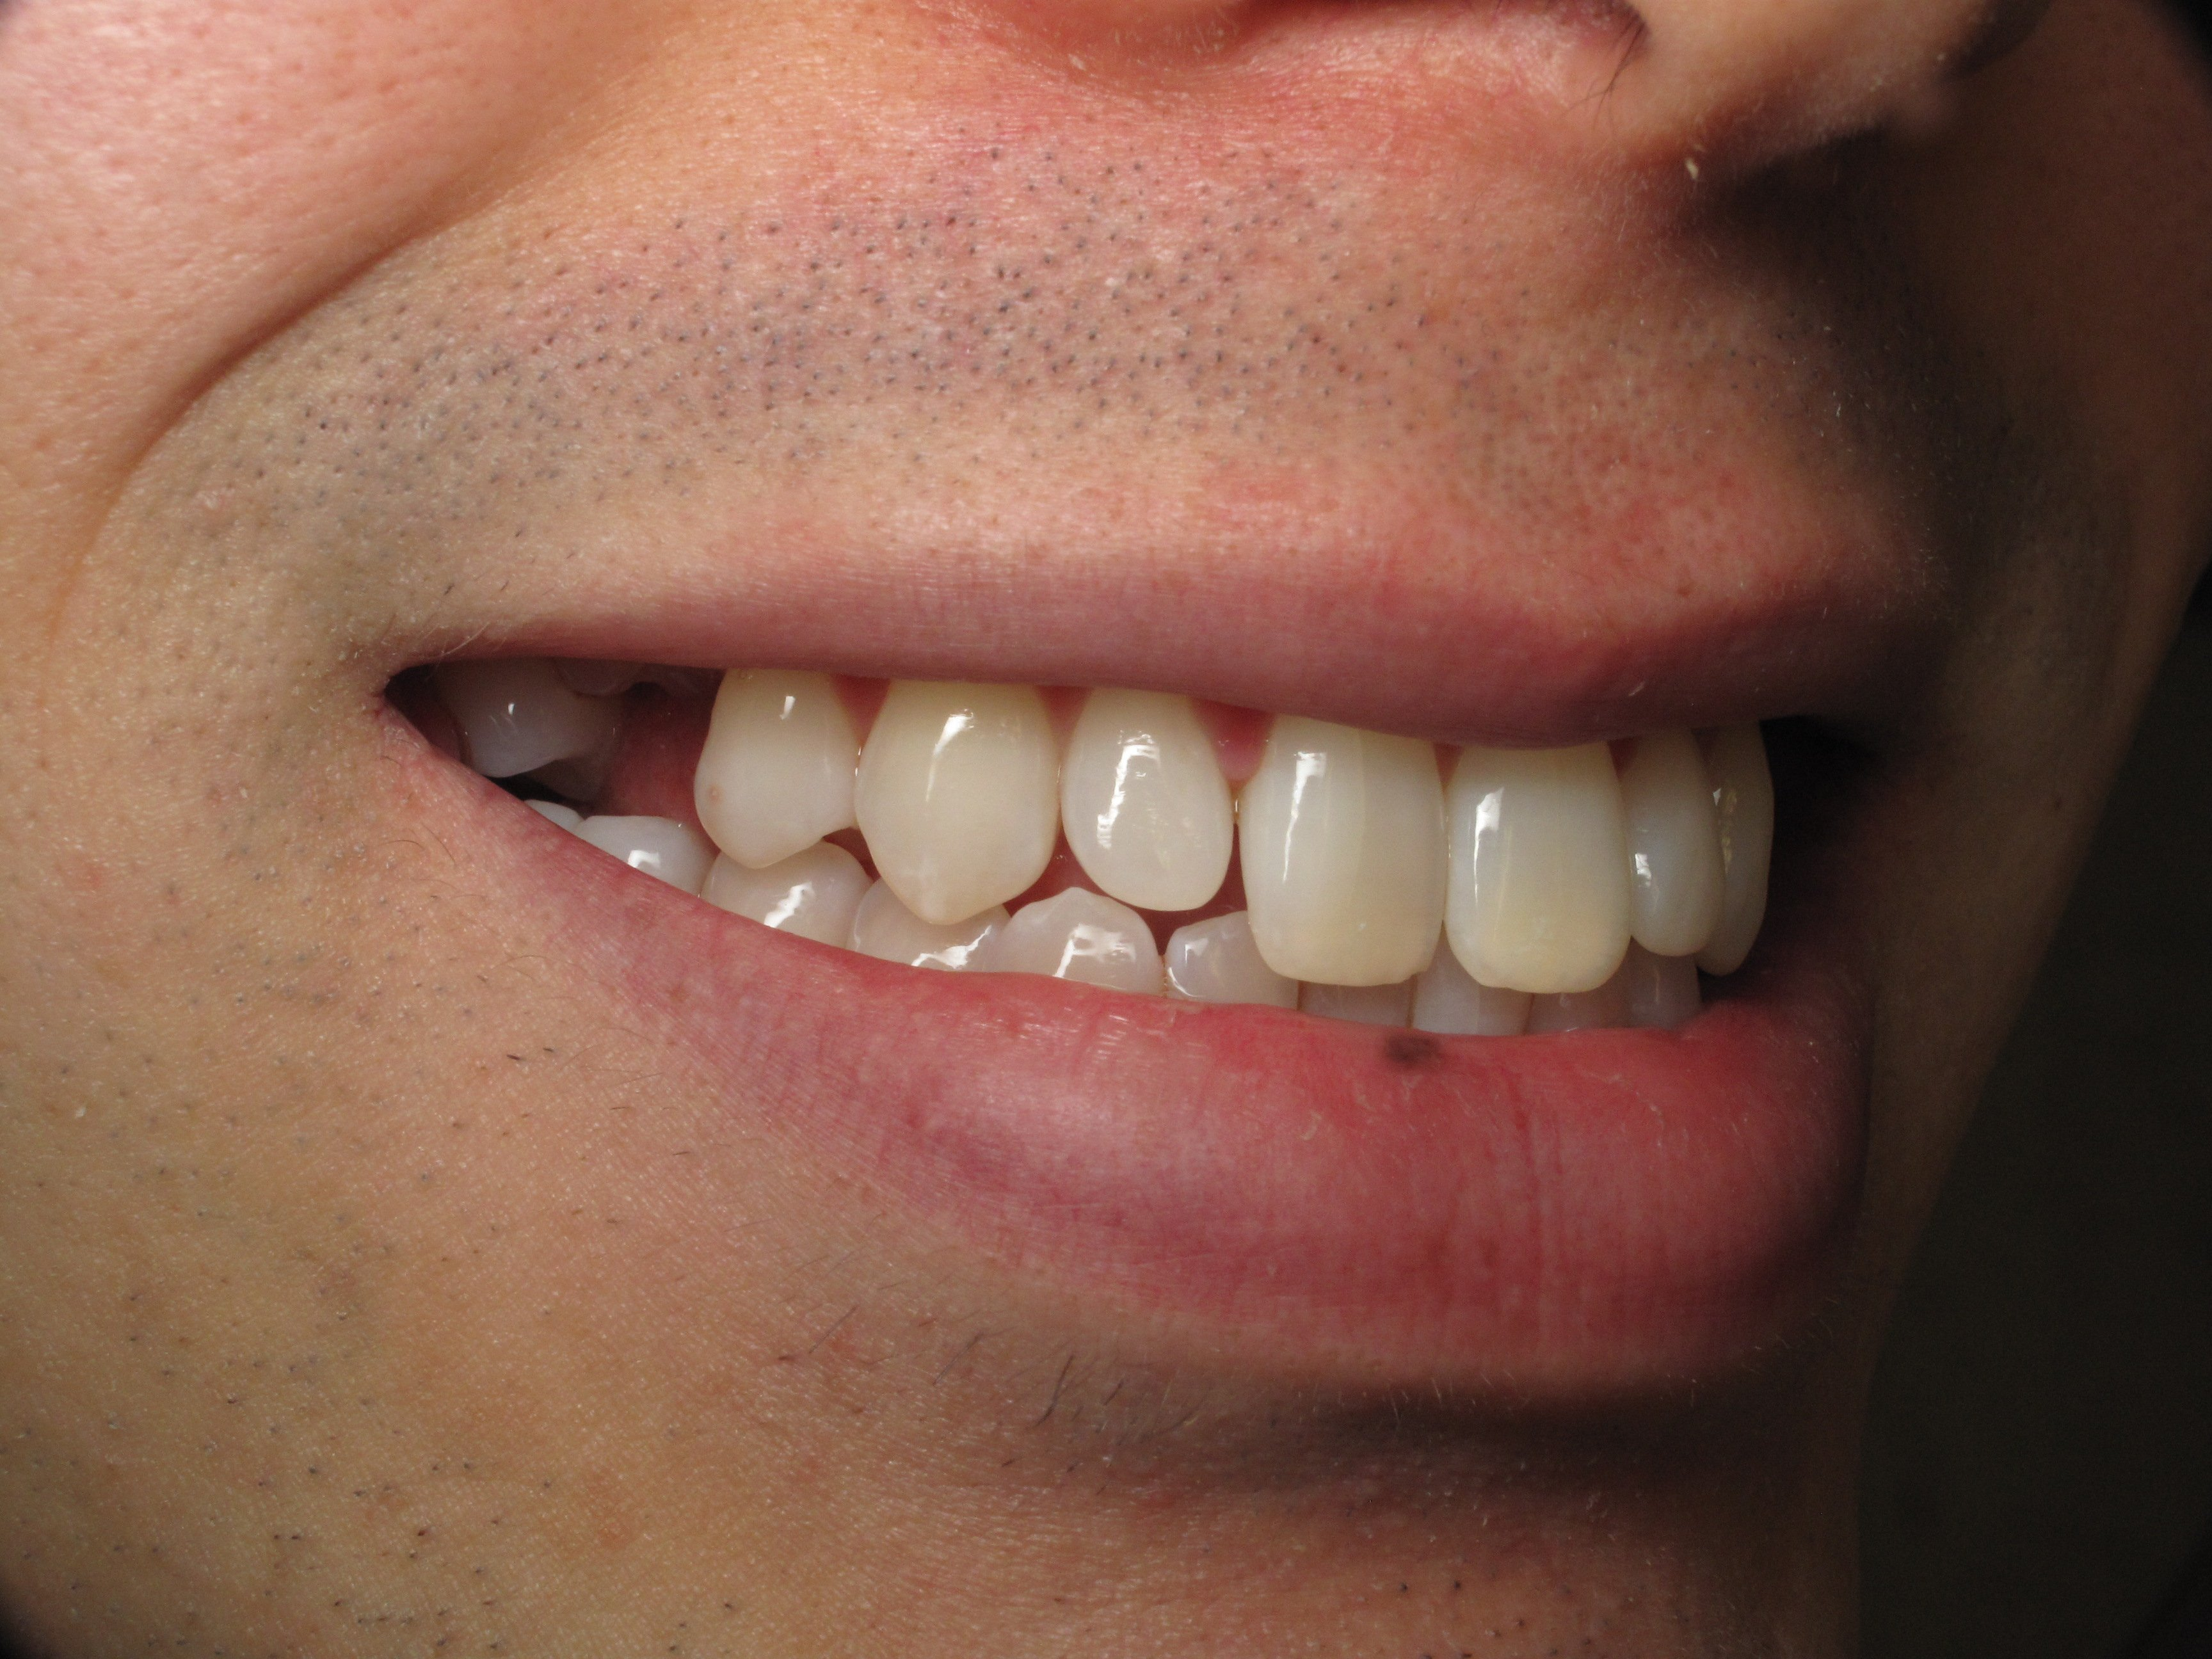 Wisdom Teeth Extraction  Coronectomy With Simultaneous Baby Tooth Dental Implant Replacement